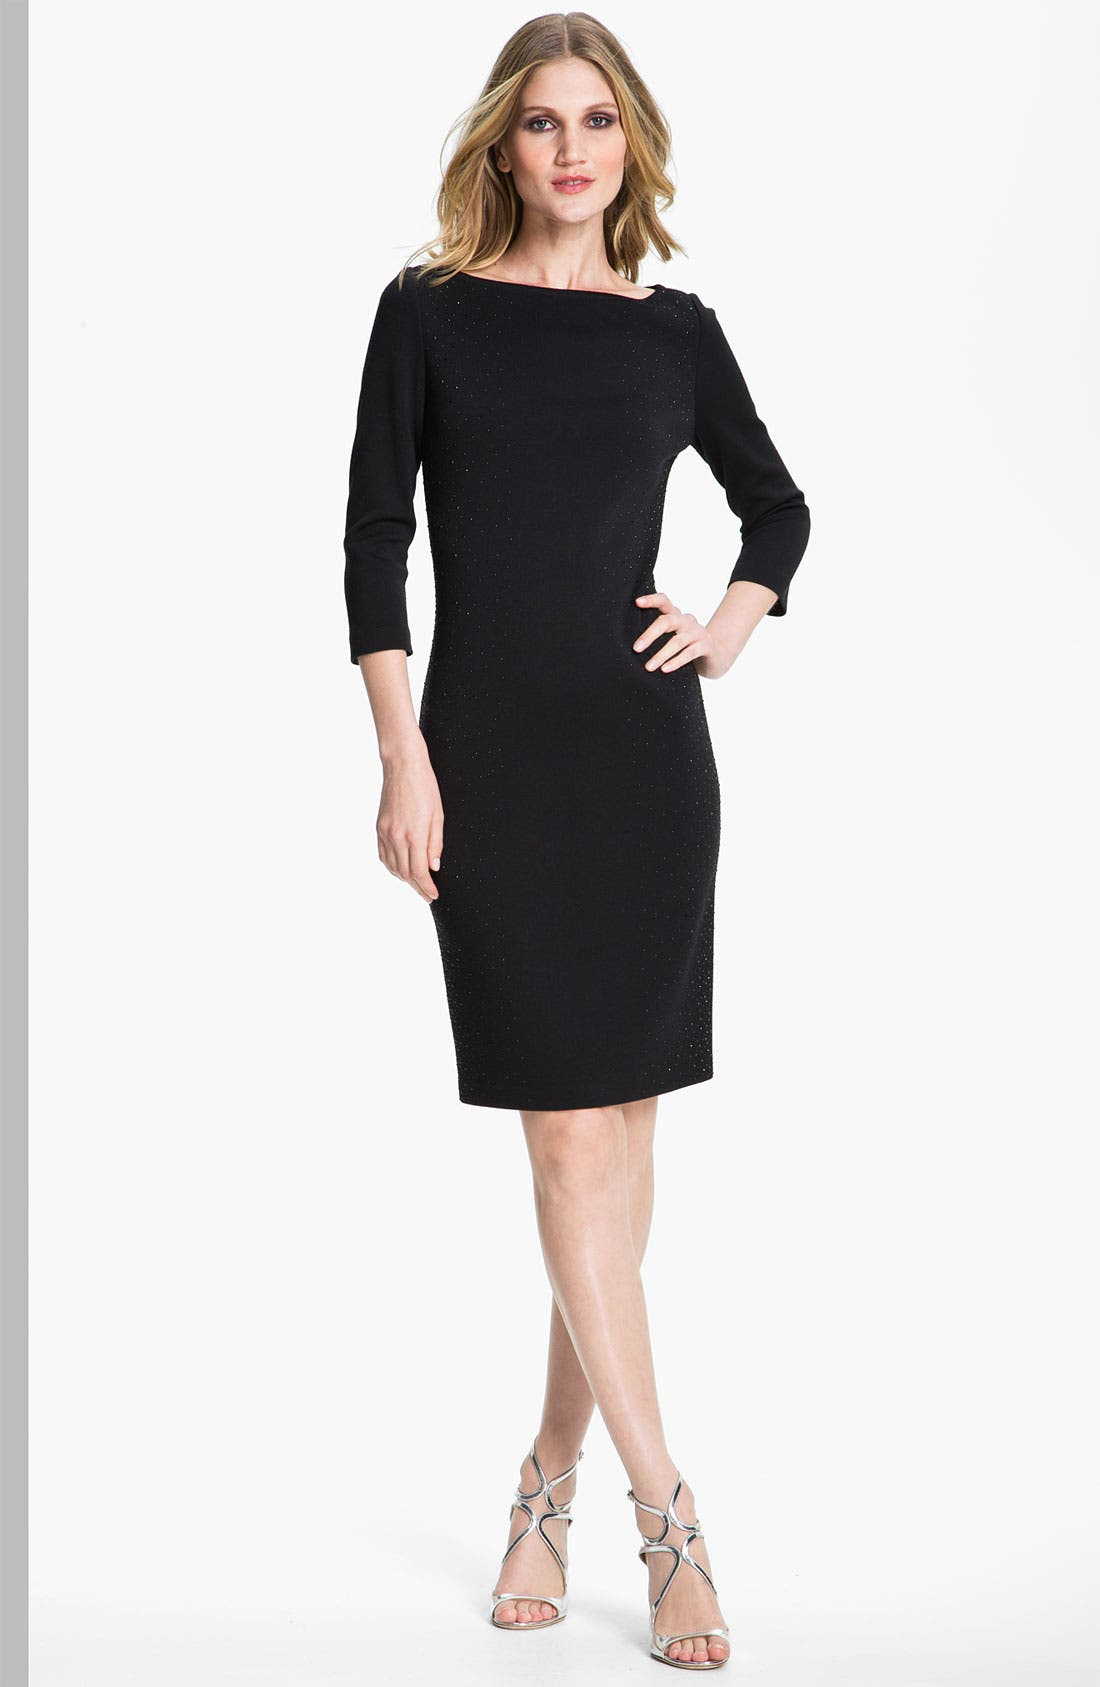 Main Image - St. John Collection Milano Knit Cocktail Dress